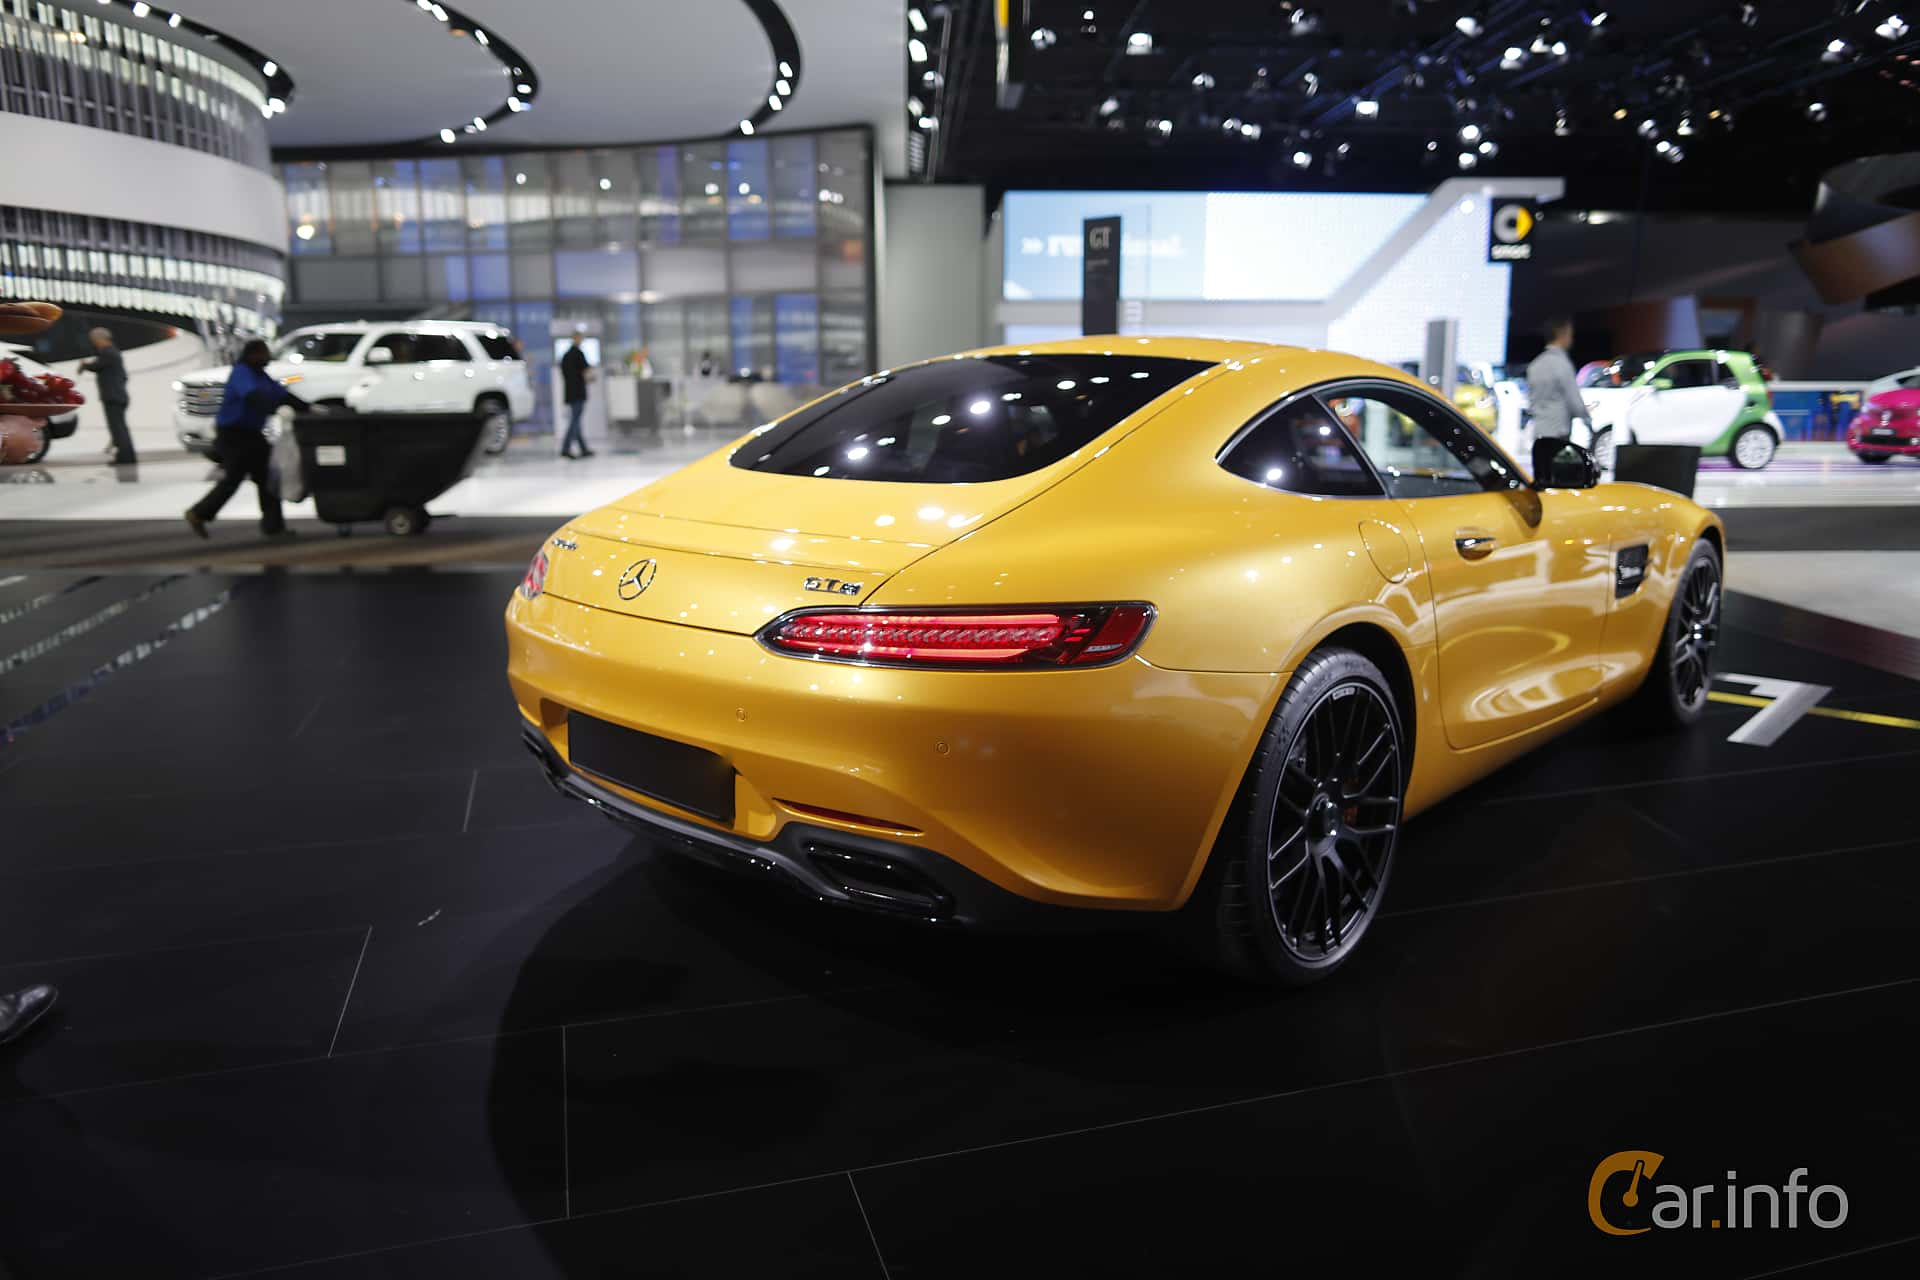 Mercedes-Benz AMG GT S 4.0 V8 AMG Speedshift DCT, 510hk, 2017 at North American International Auto Show 2017